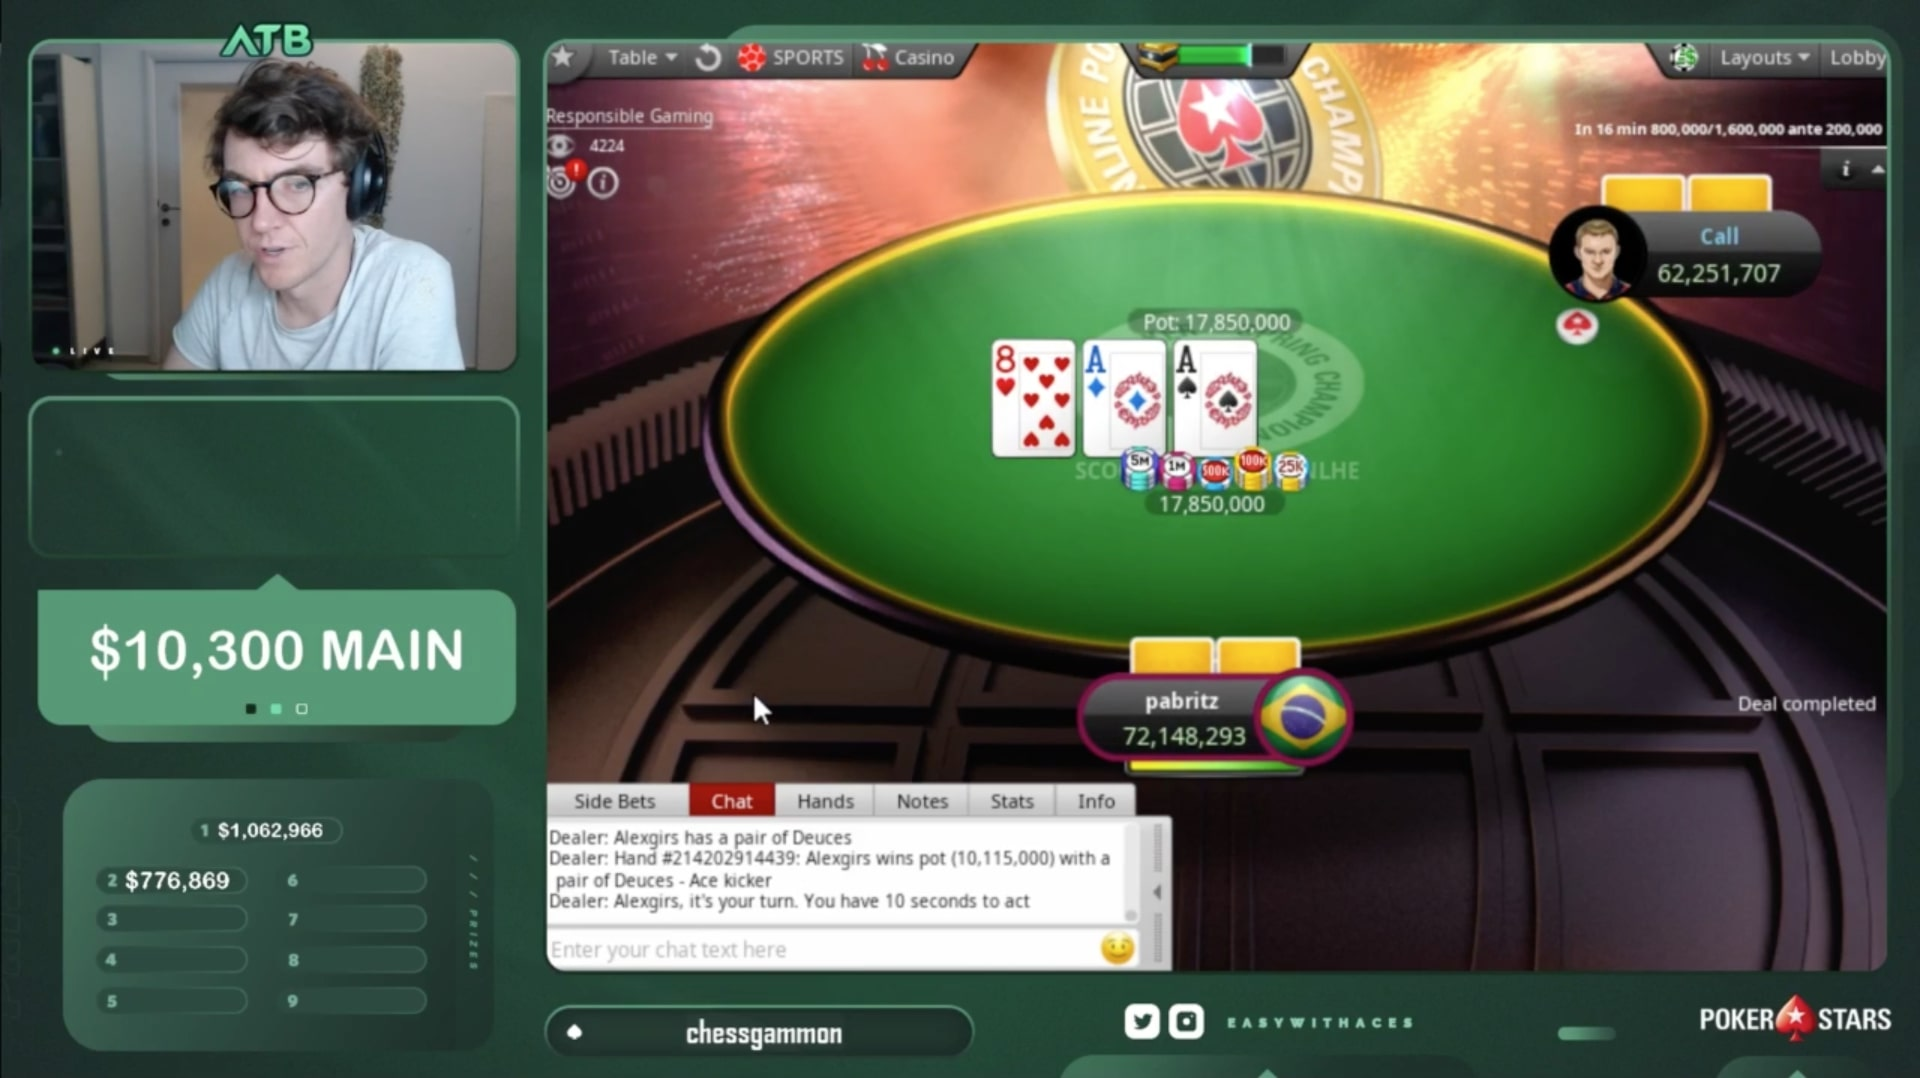 Белорус Александр «alexgirs» Гирс выиграл SCOOP ME на PokerStars и получил $920,595 9